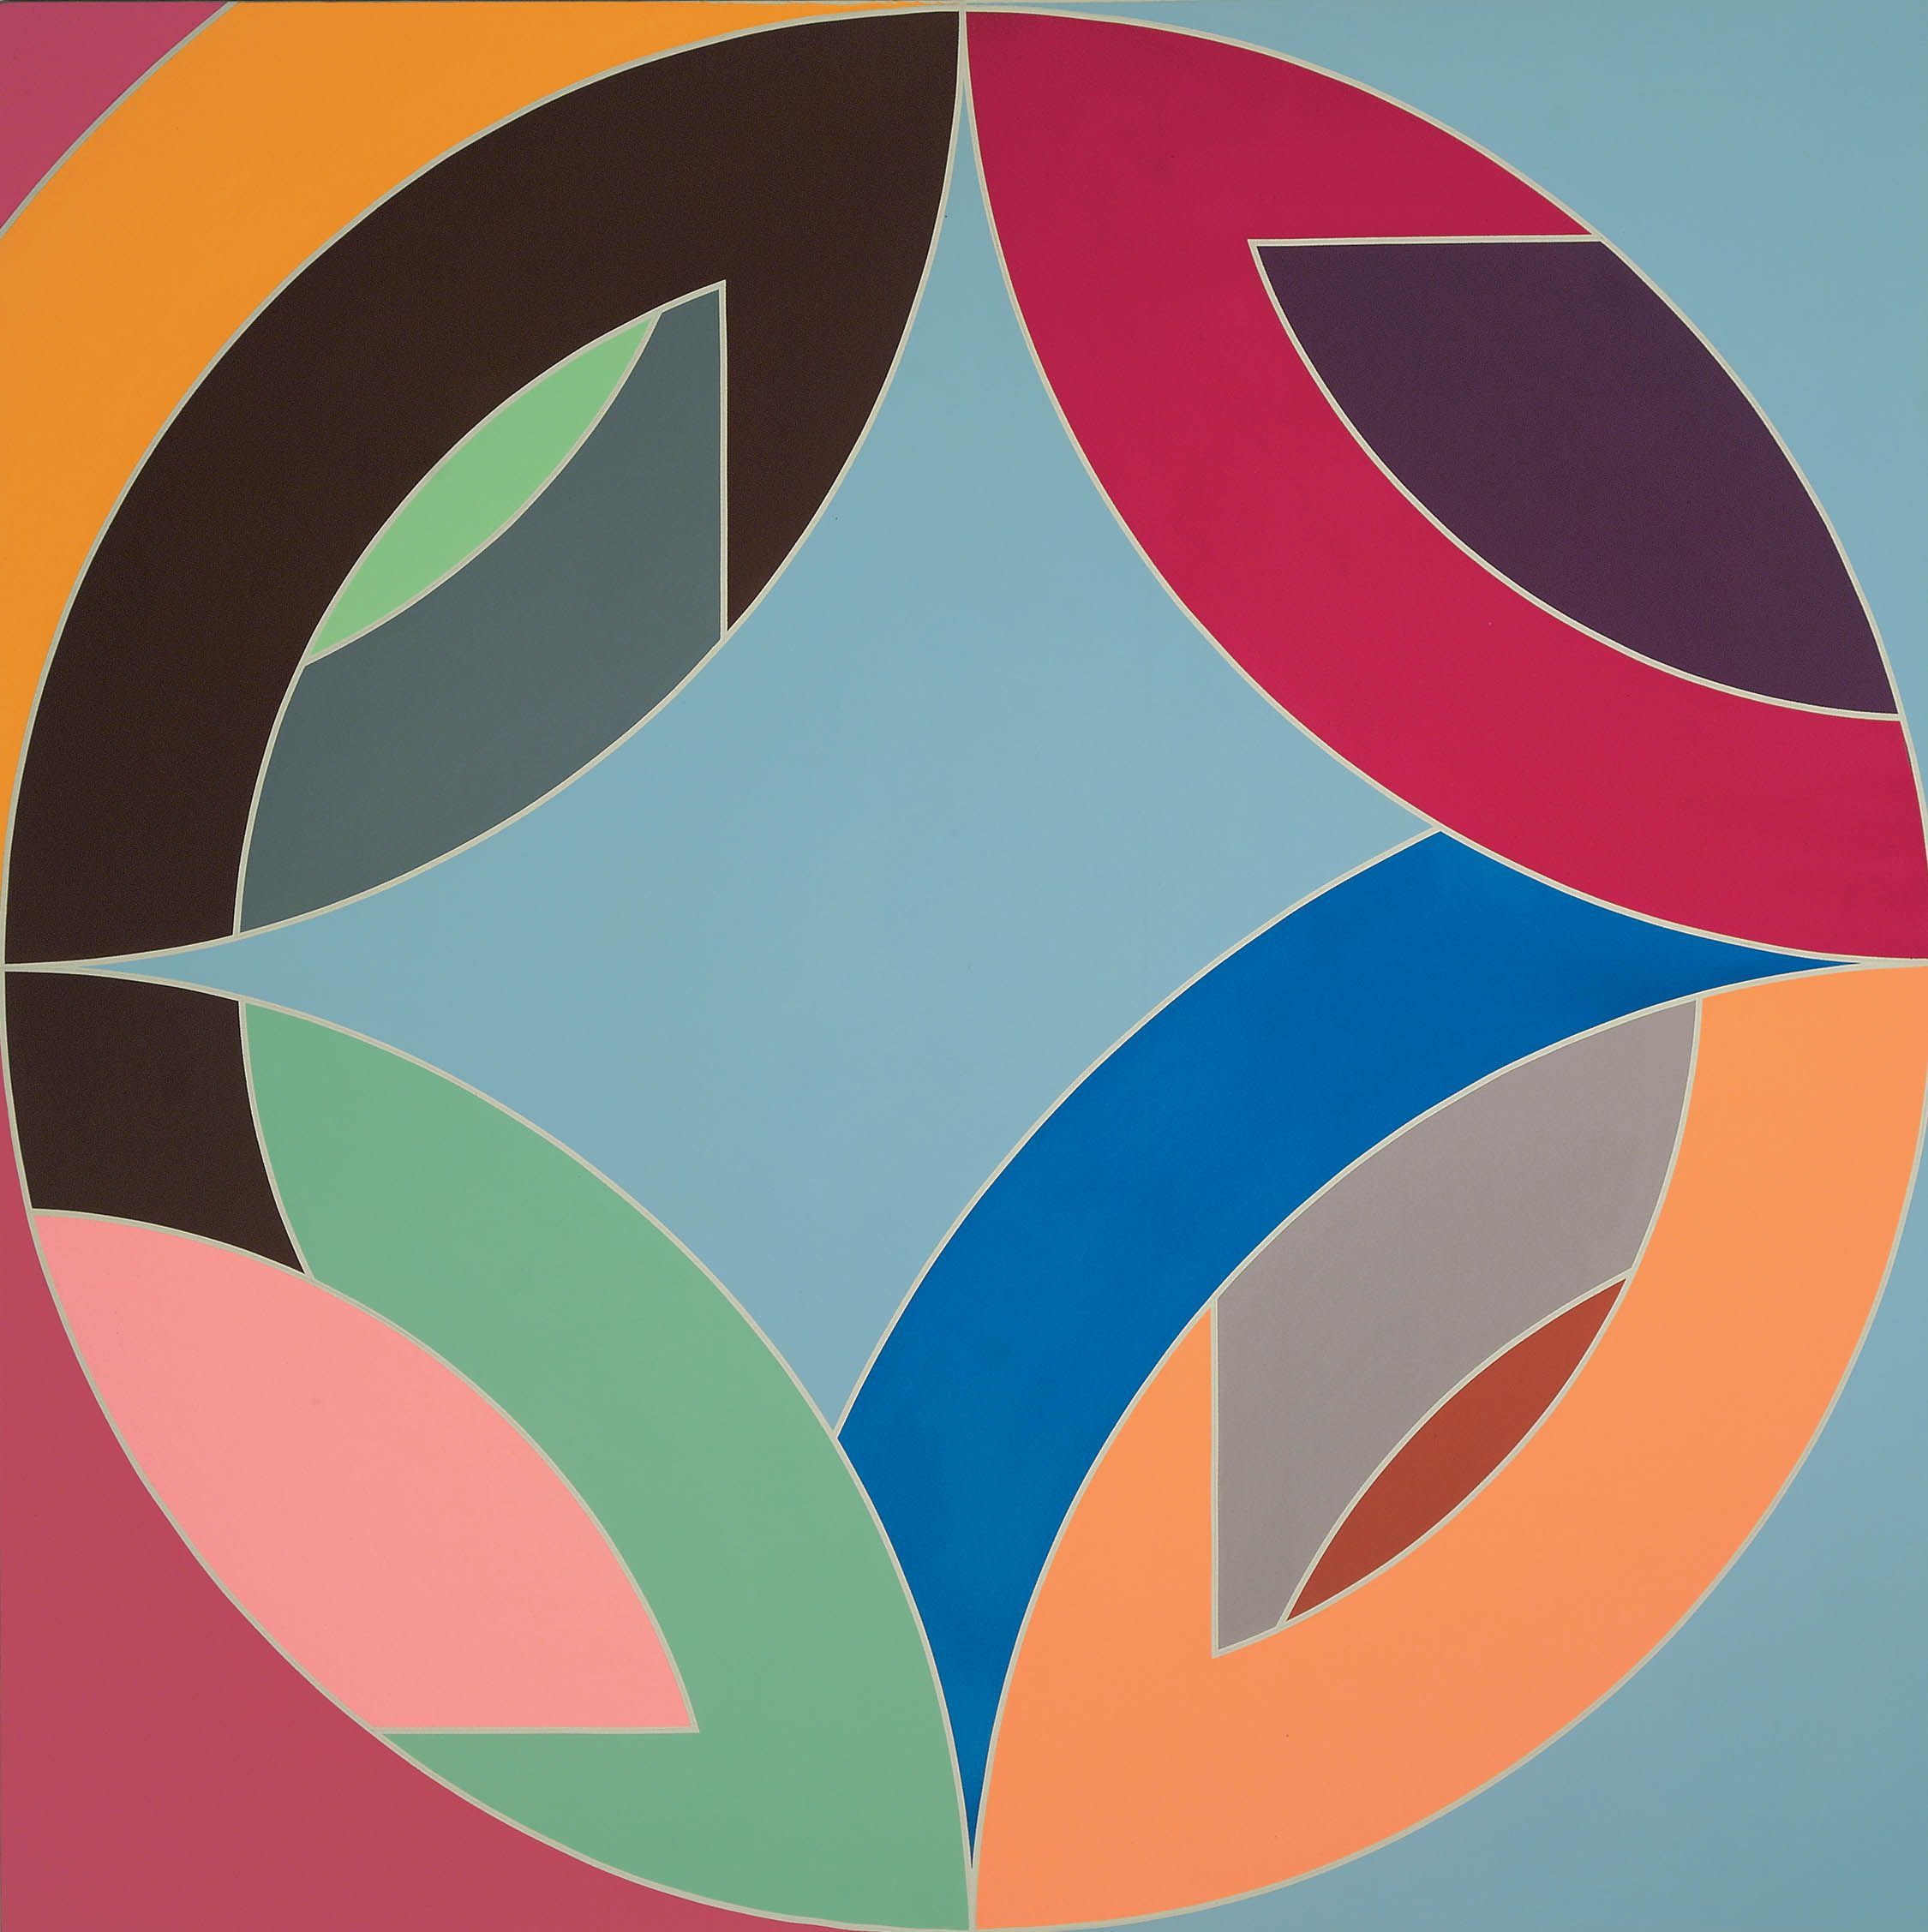 Frank stella born may 12 1936 is an american painter for Minimal art 1970